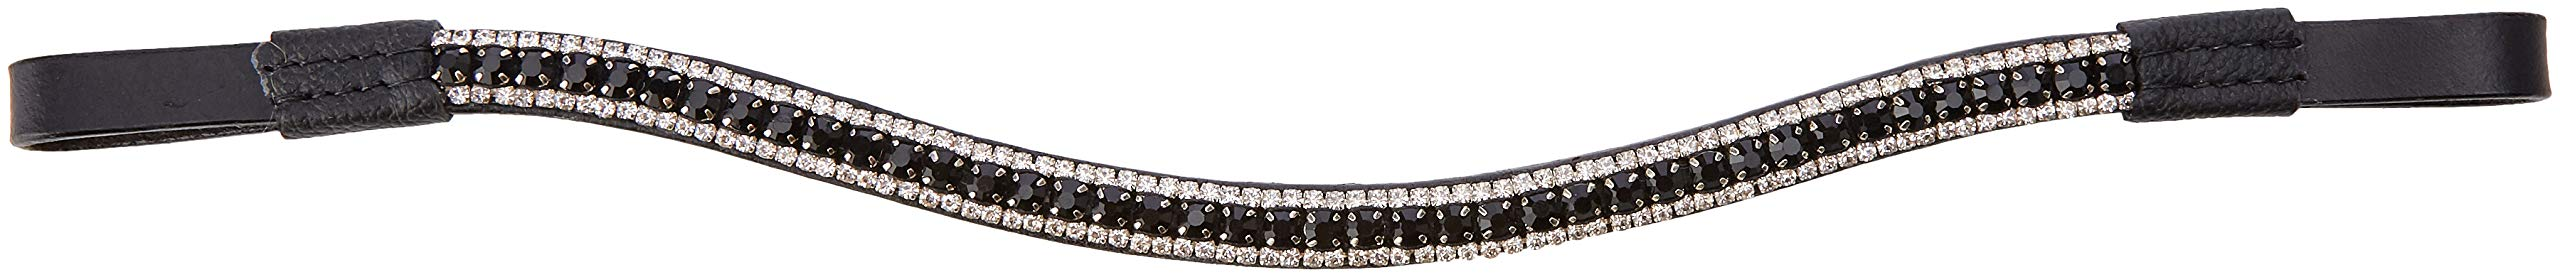 Cwell Equine Bling!Leather Mega-Sparkly Browband3-Row CrystalsDressageBLACK/Clear F/C/P Black (Full 16'')